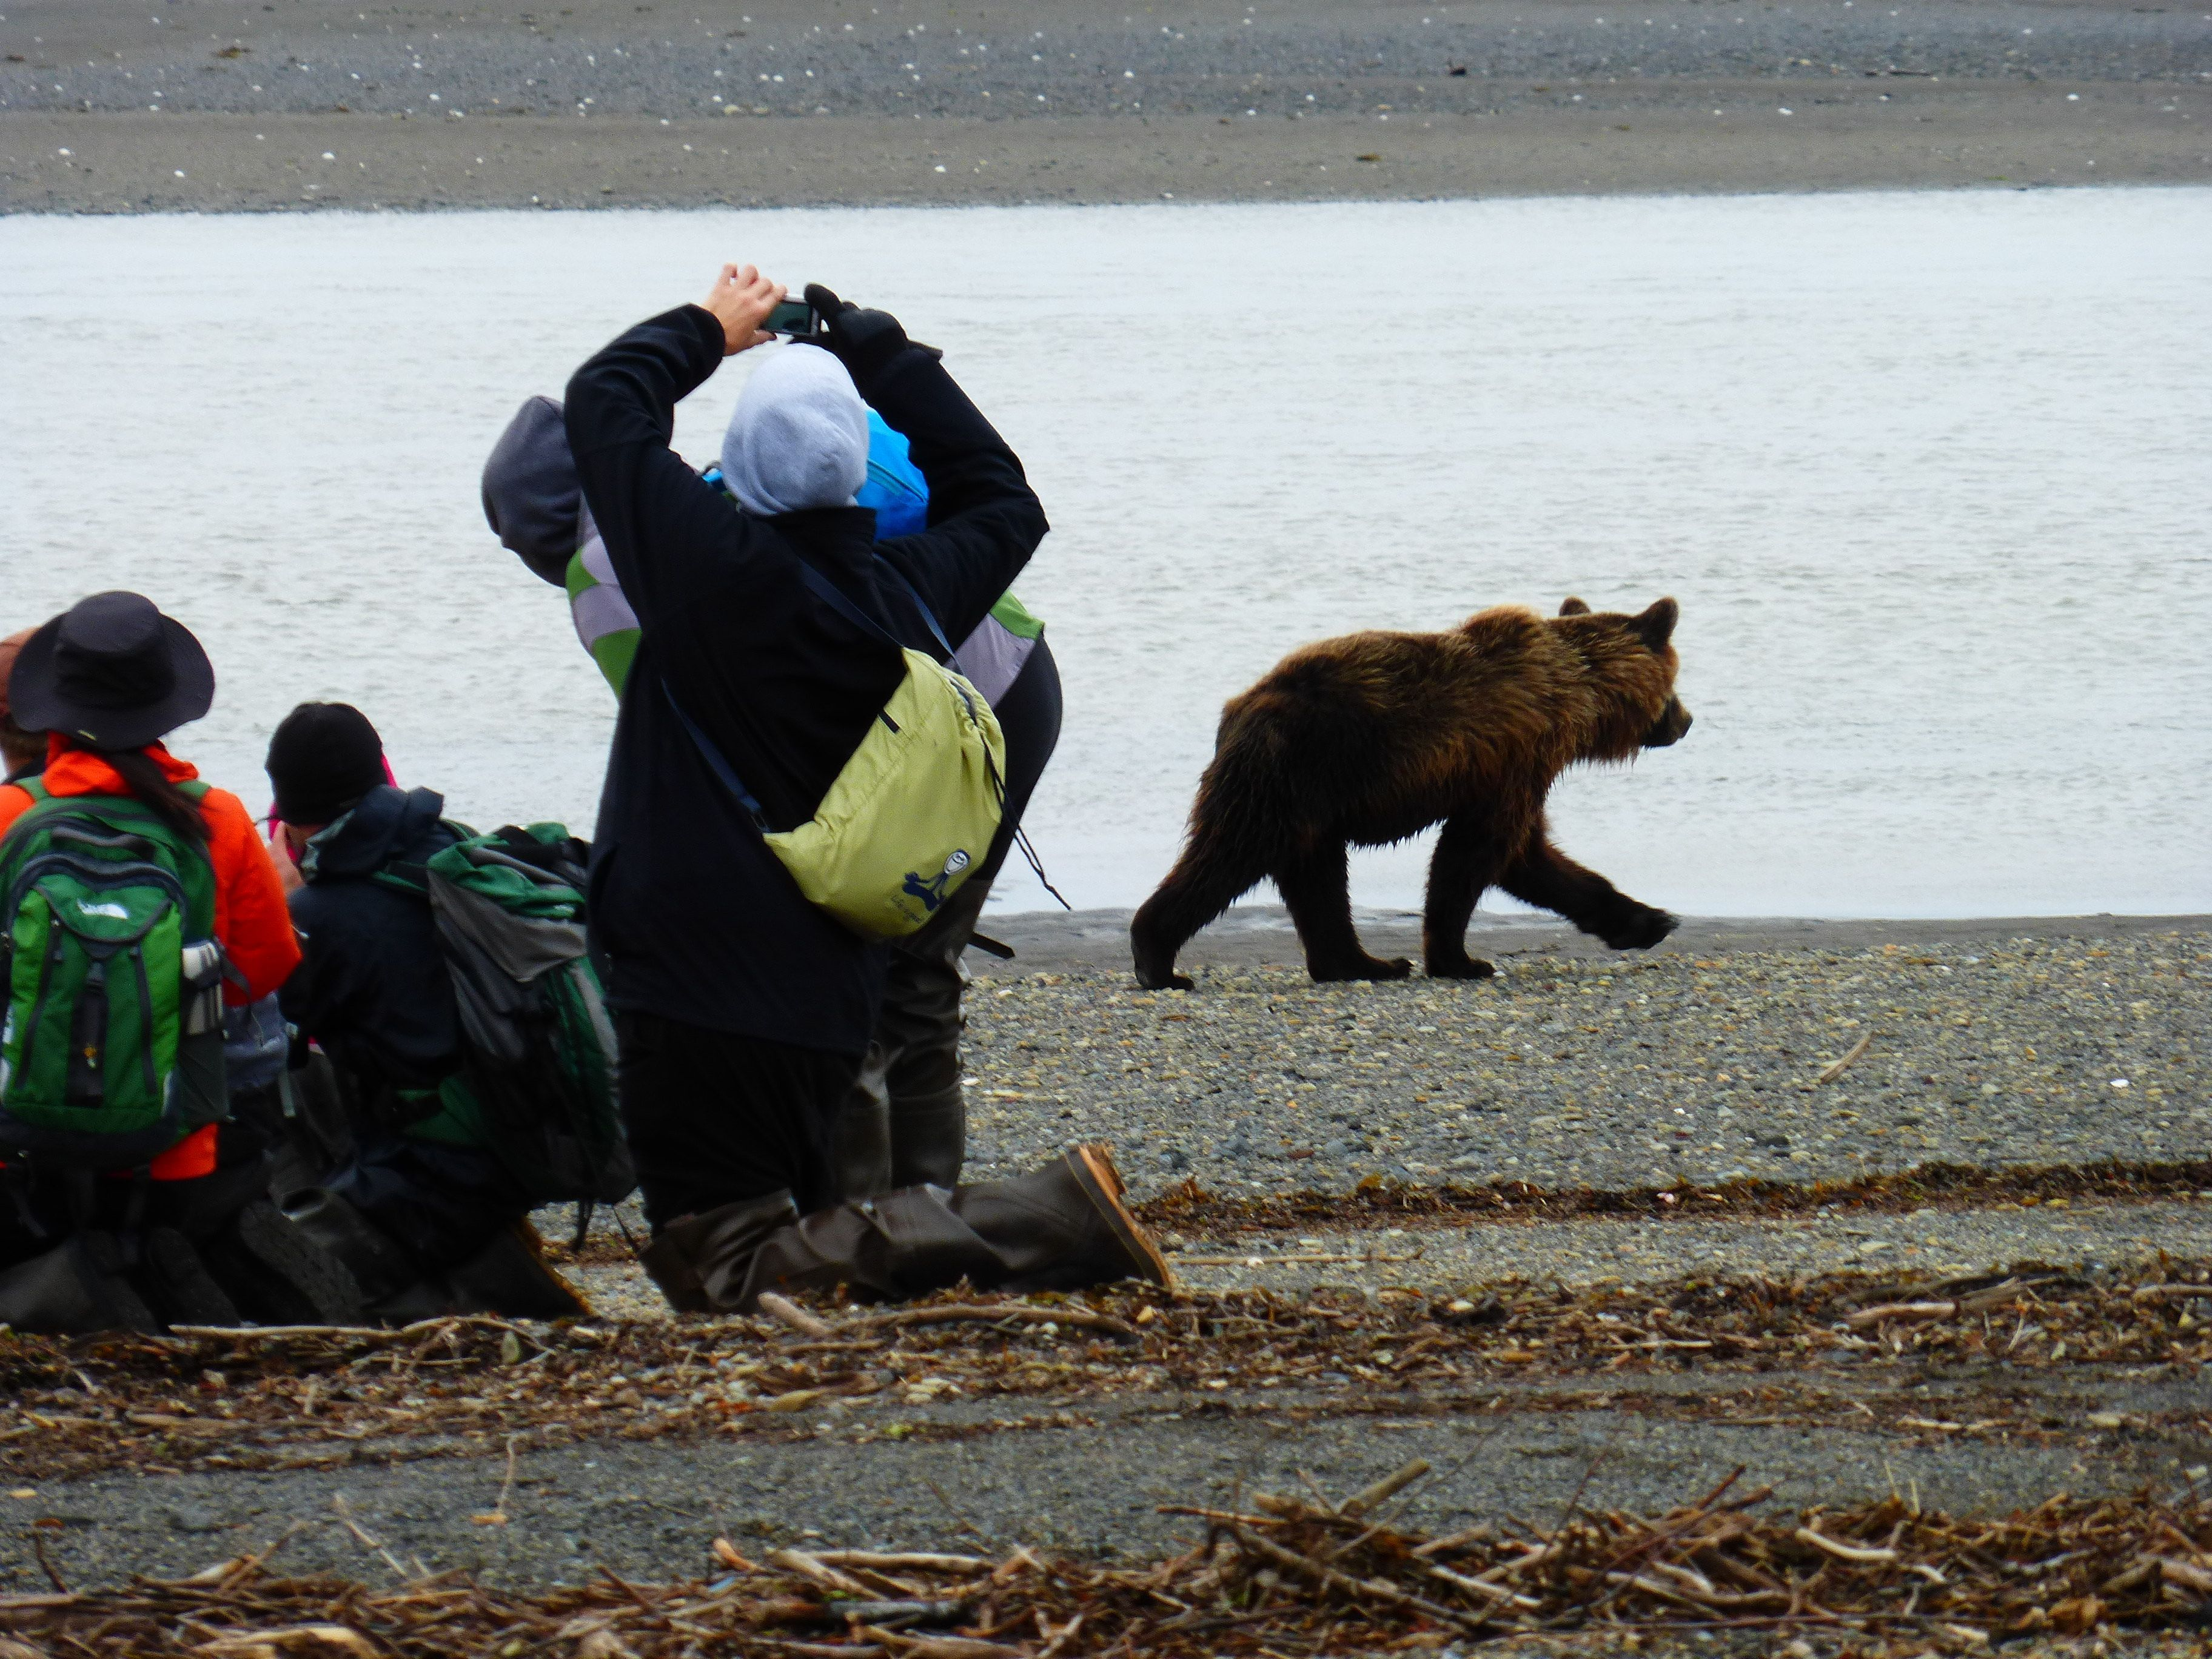 This past August, we visited the Katmai Peninsula in Alaska to see the Grizzlies.  Awesome!  We were up close and personal with the bears.  Would do it again in a heartbeat